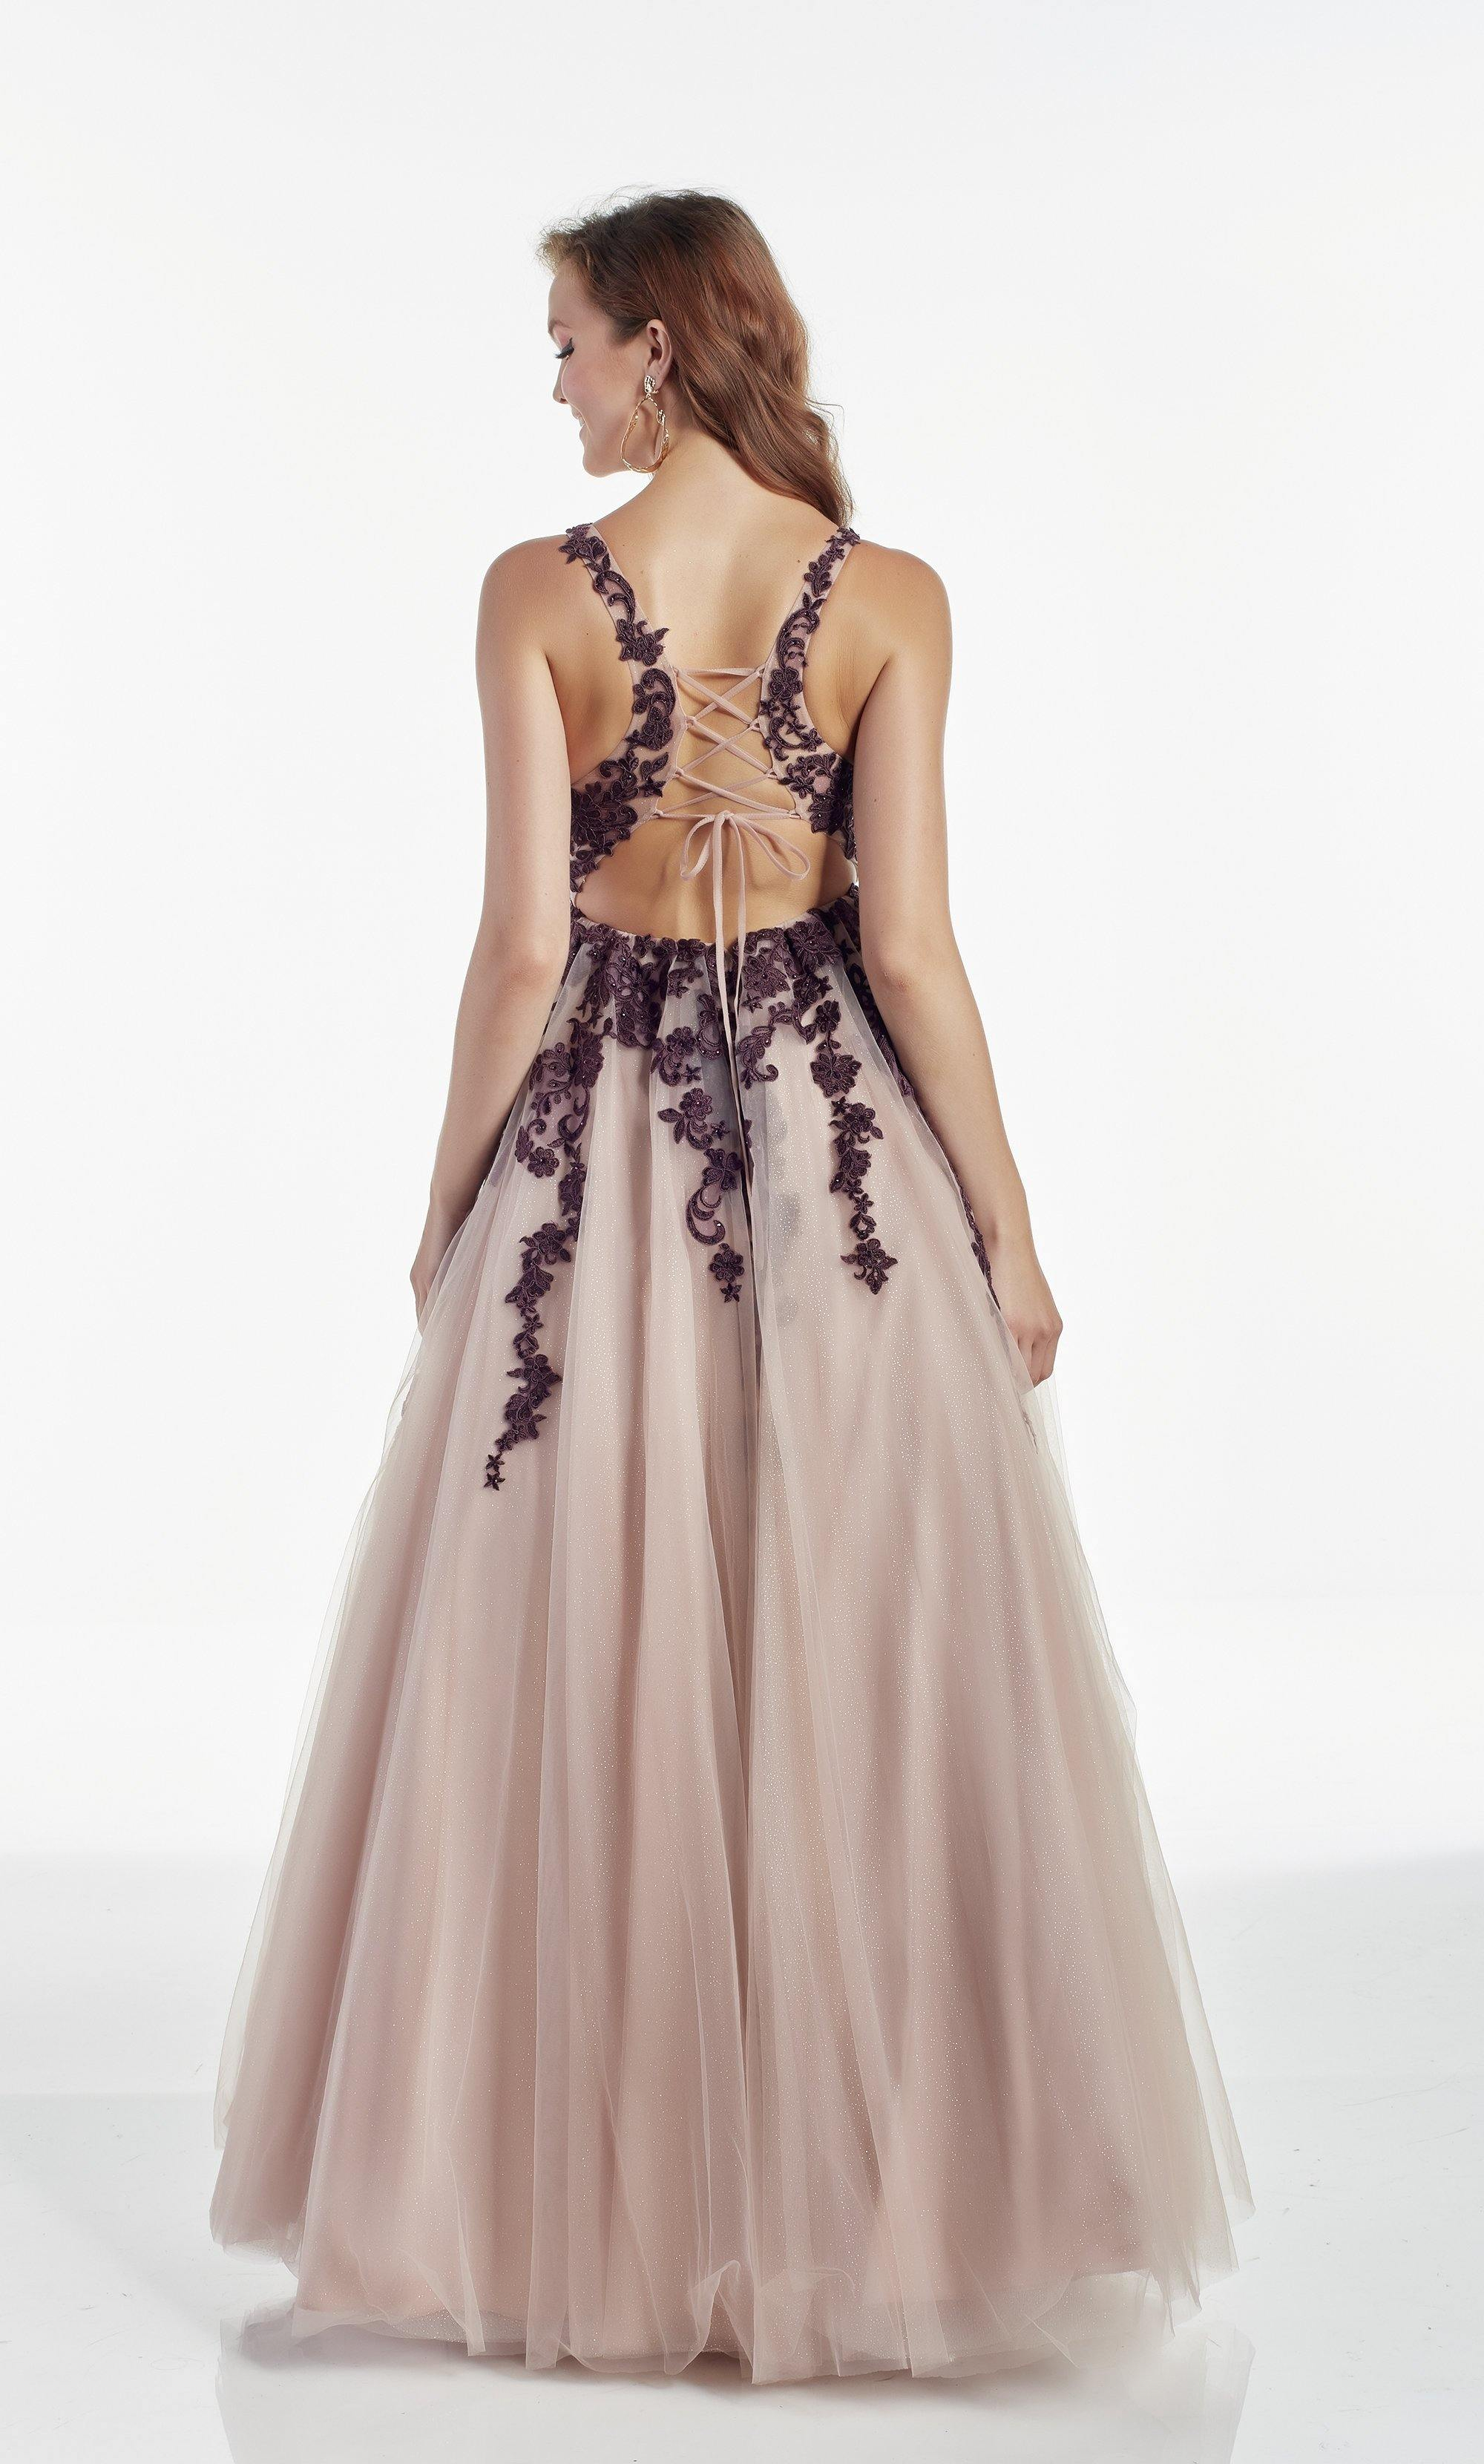 Rose colored tulle ballgown with a V neckline and Dark Purple floral embroidery